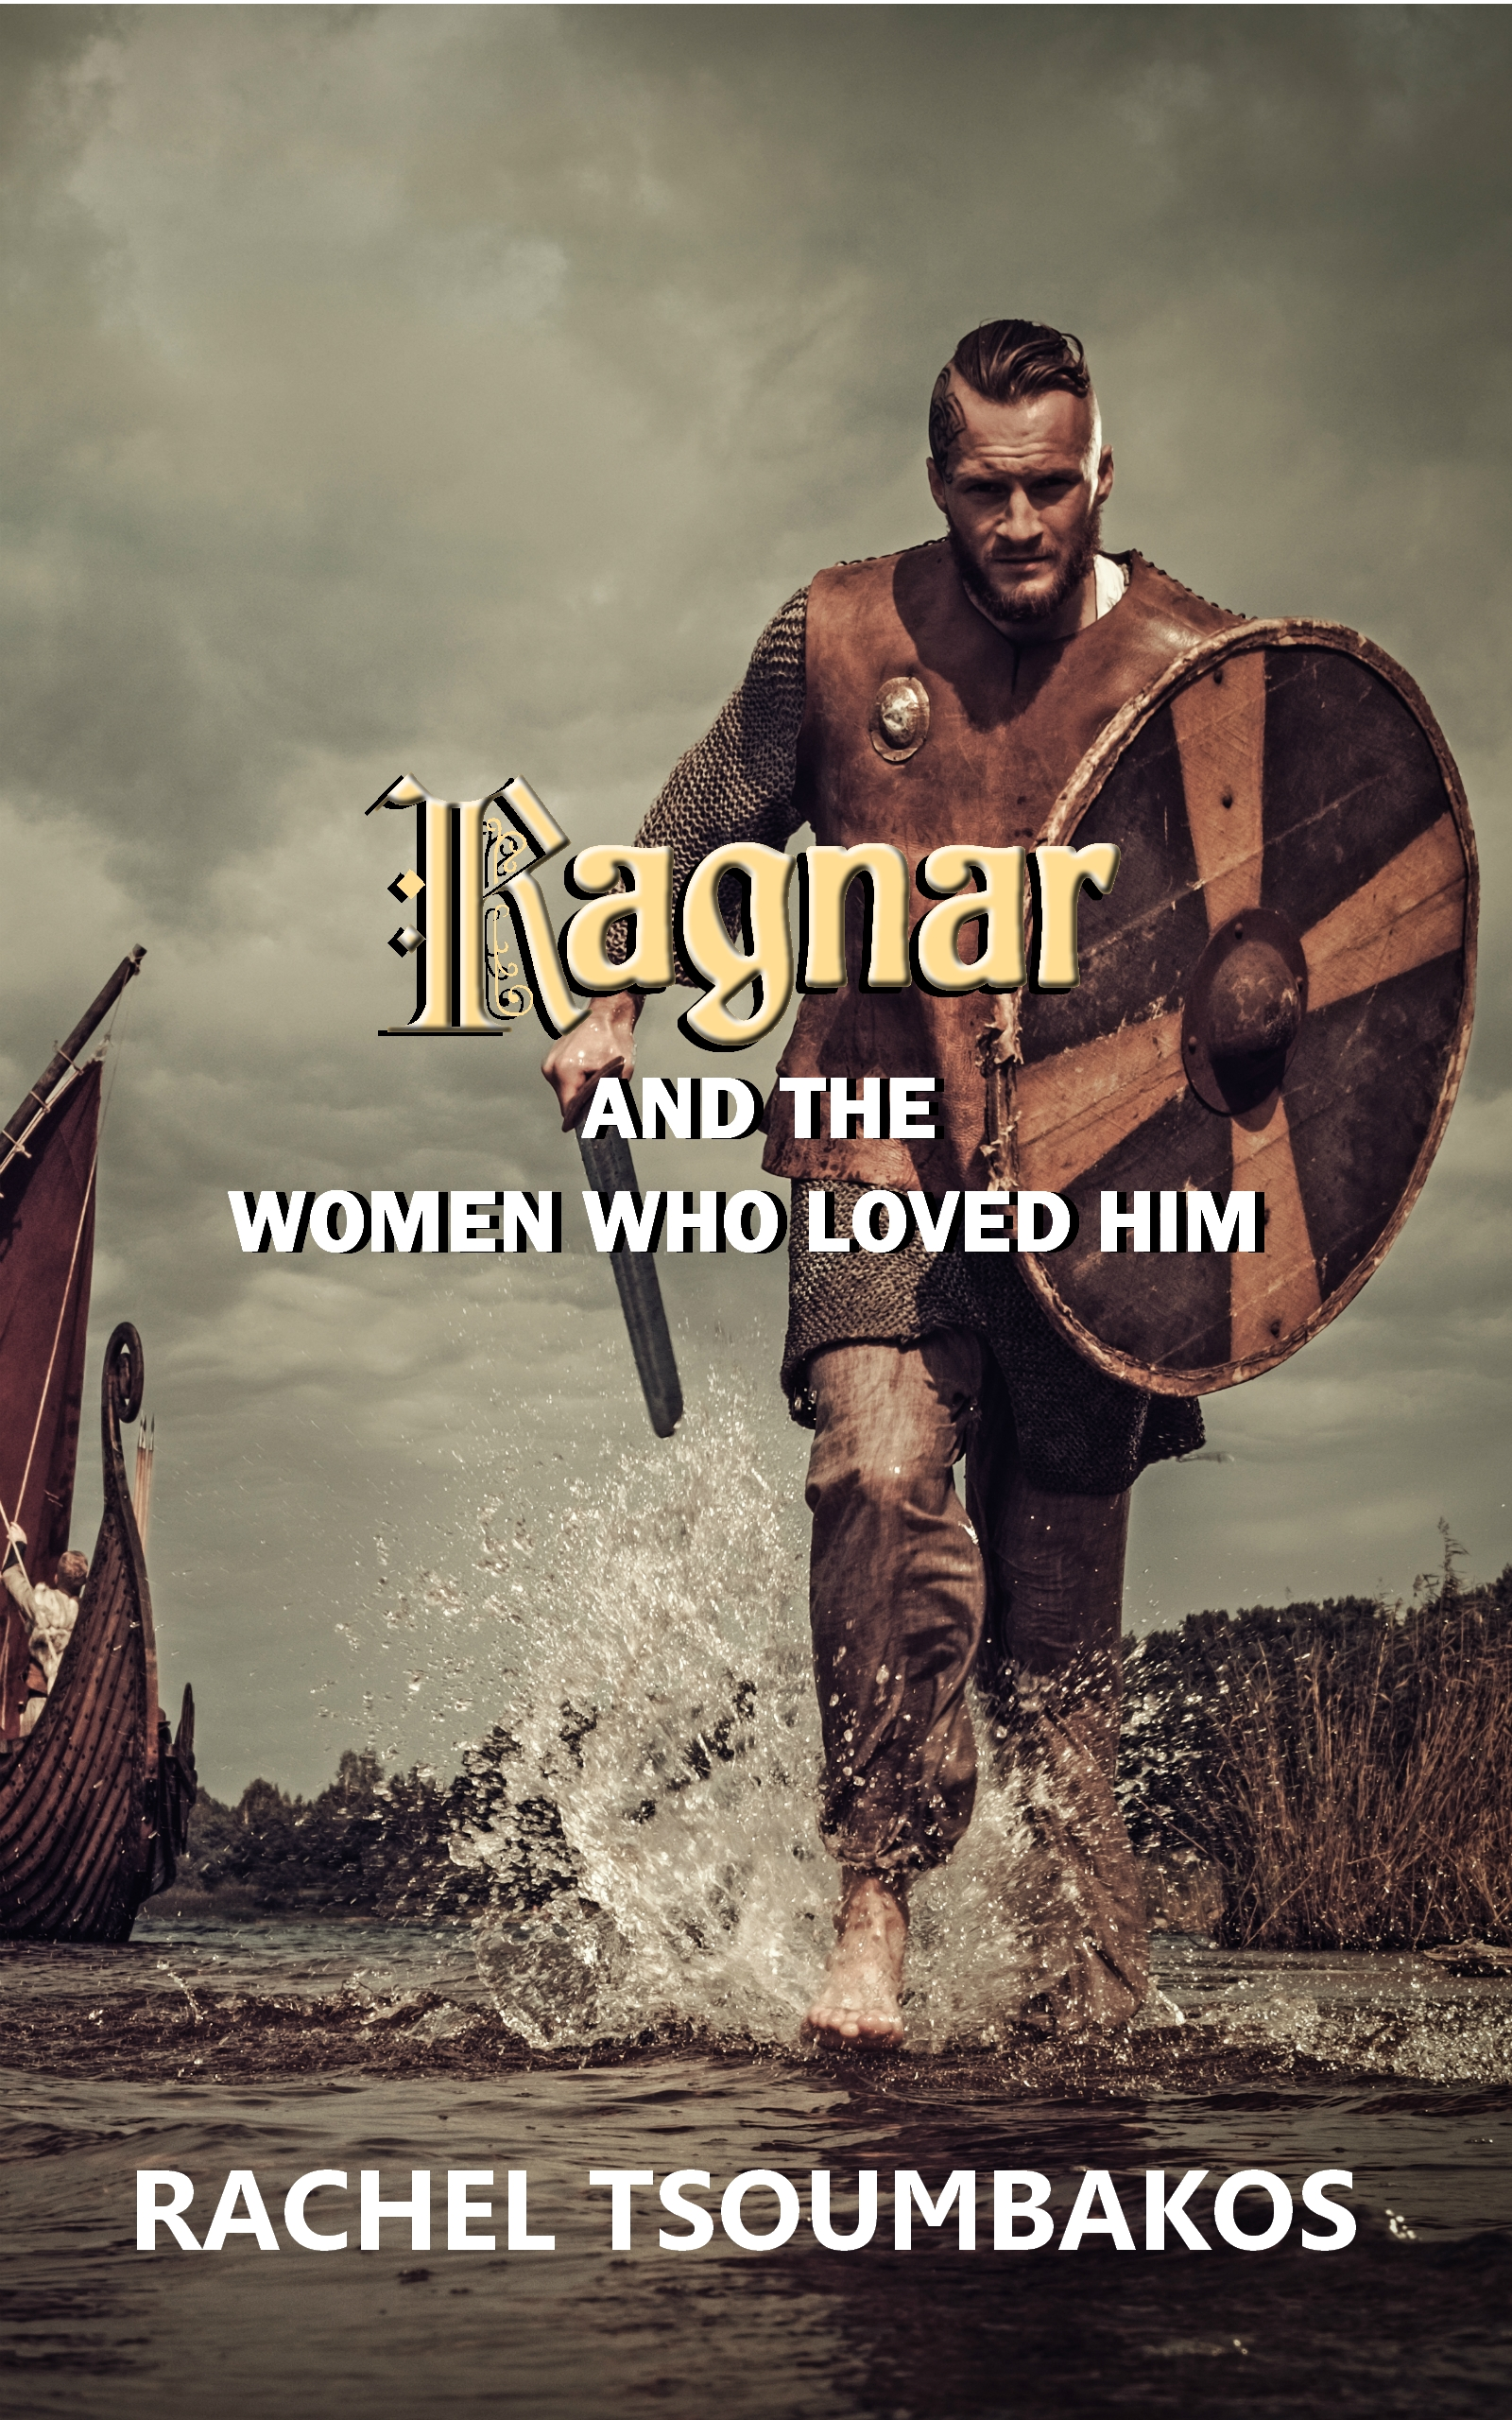 The History Of The Vikings: How Many Wives Did Ragnar Have? | Rachel